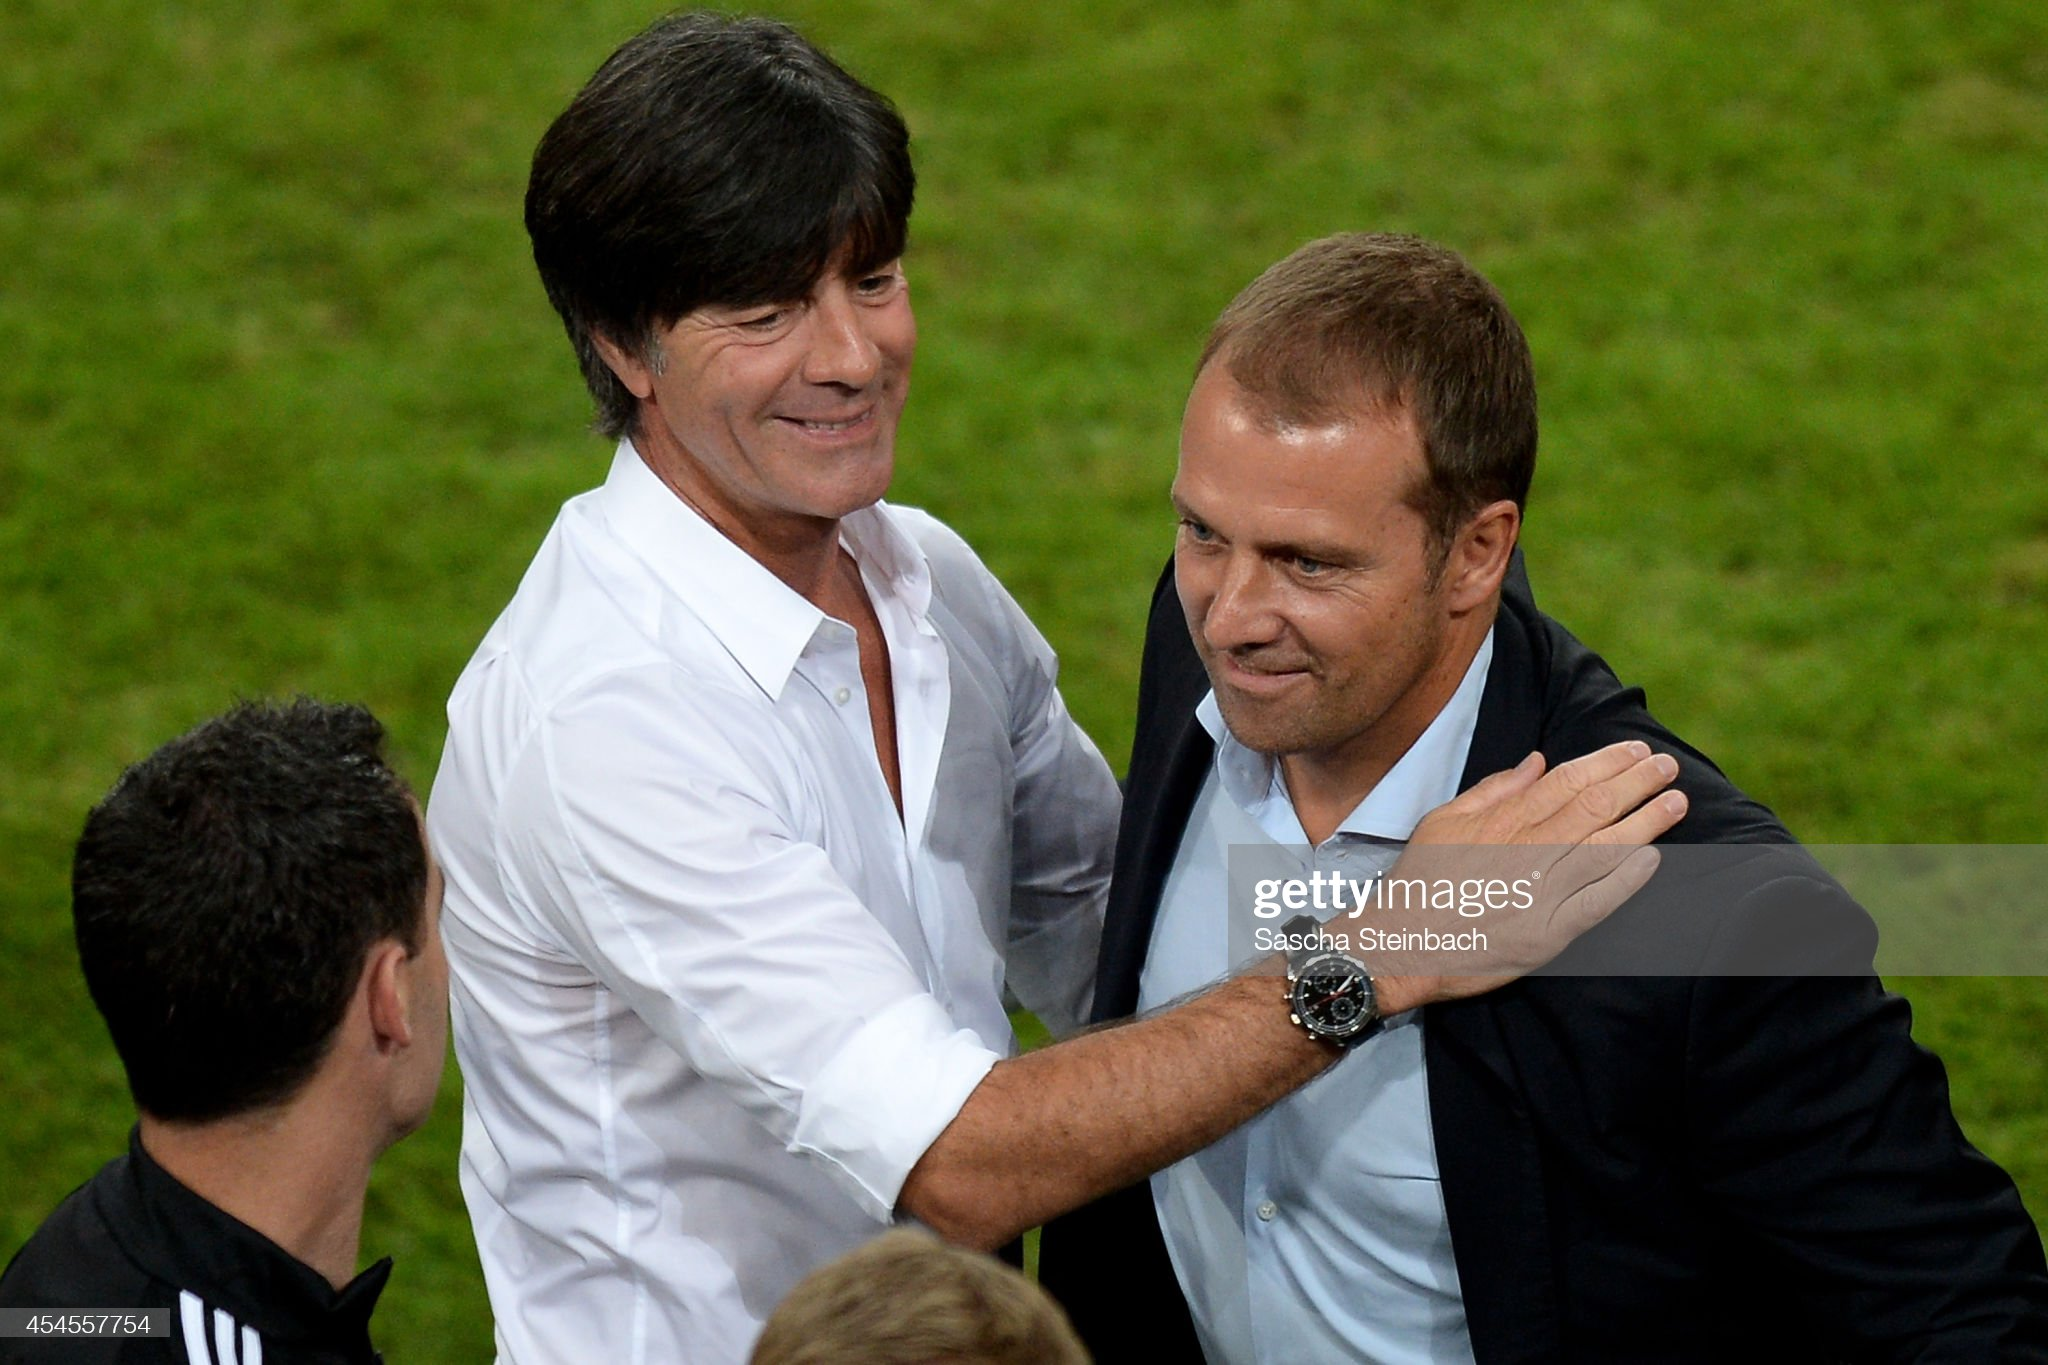 German football set for an interesting managerial summer